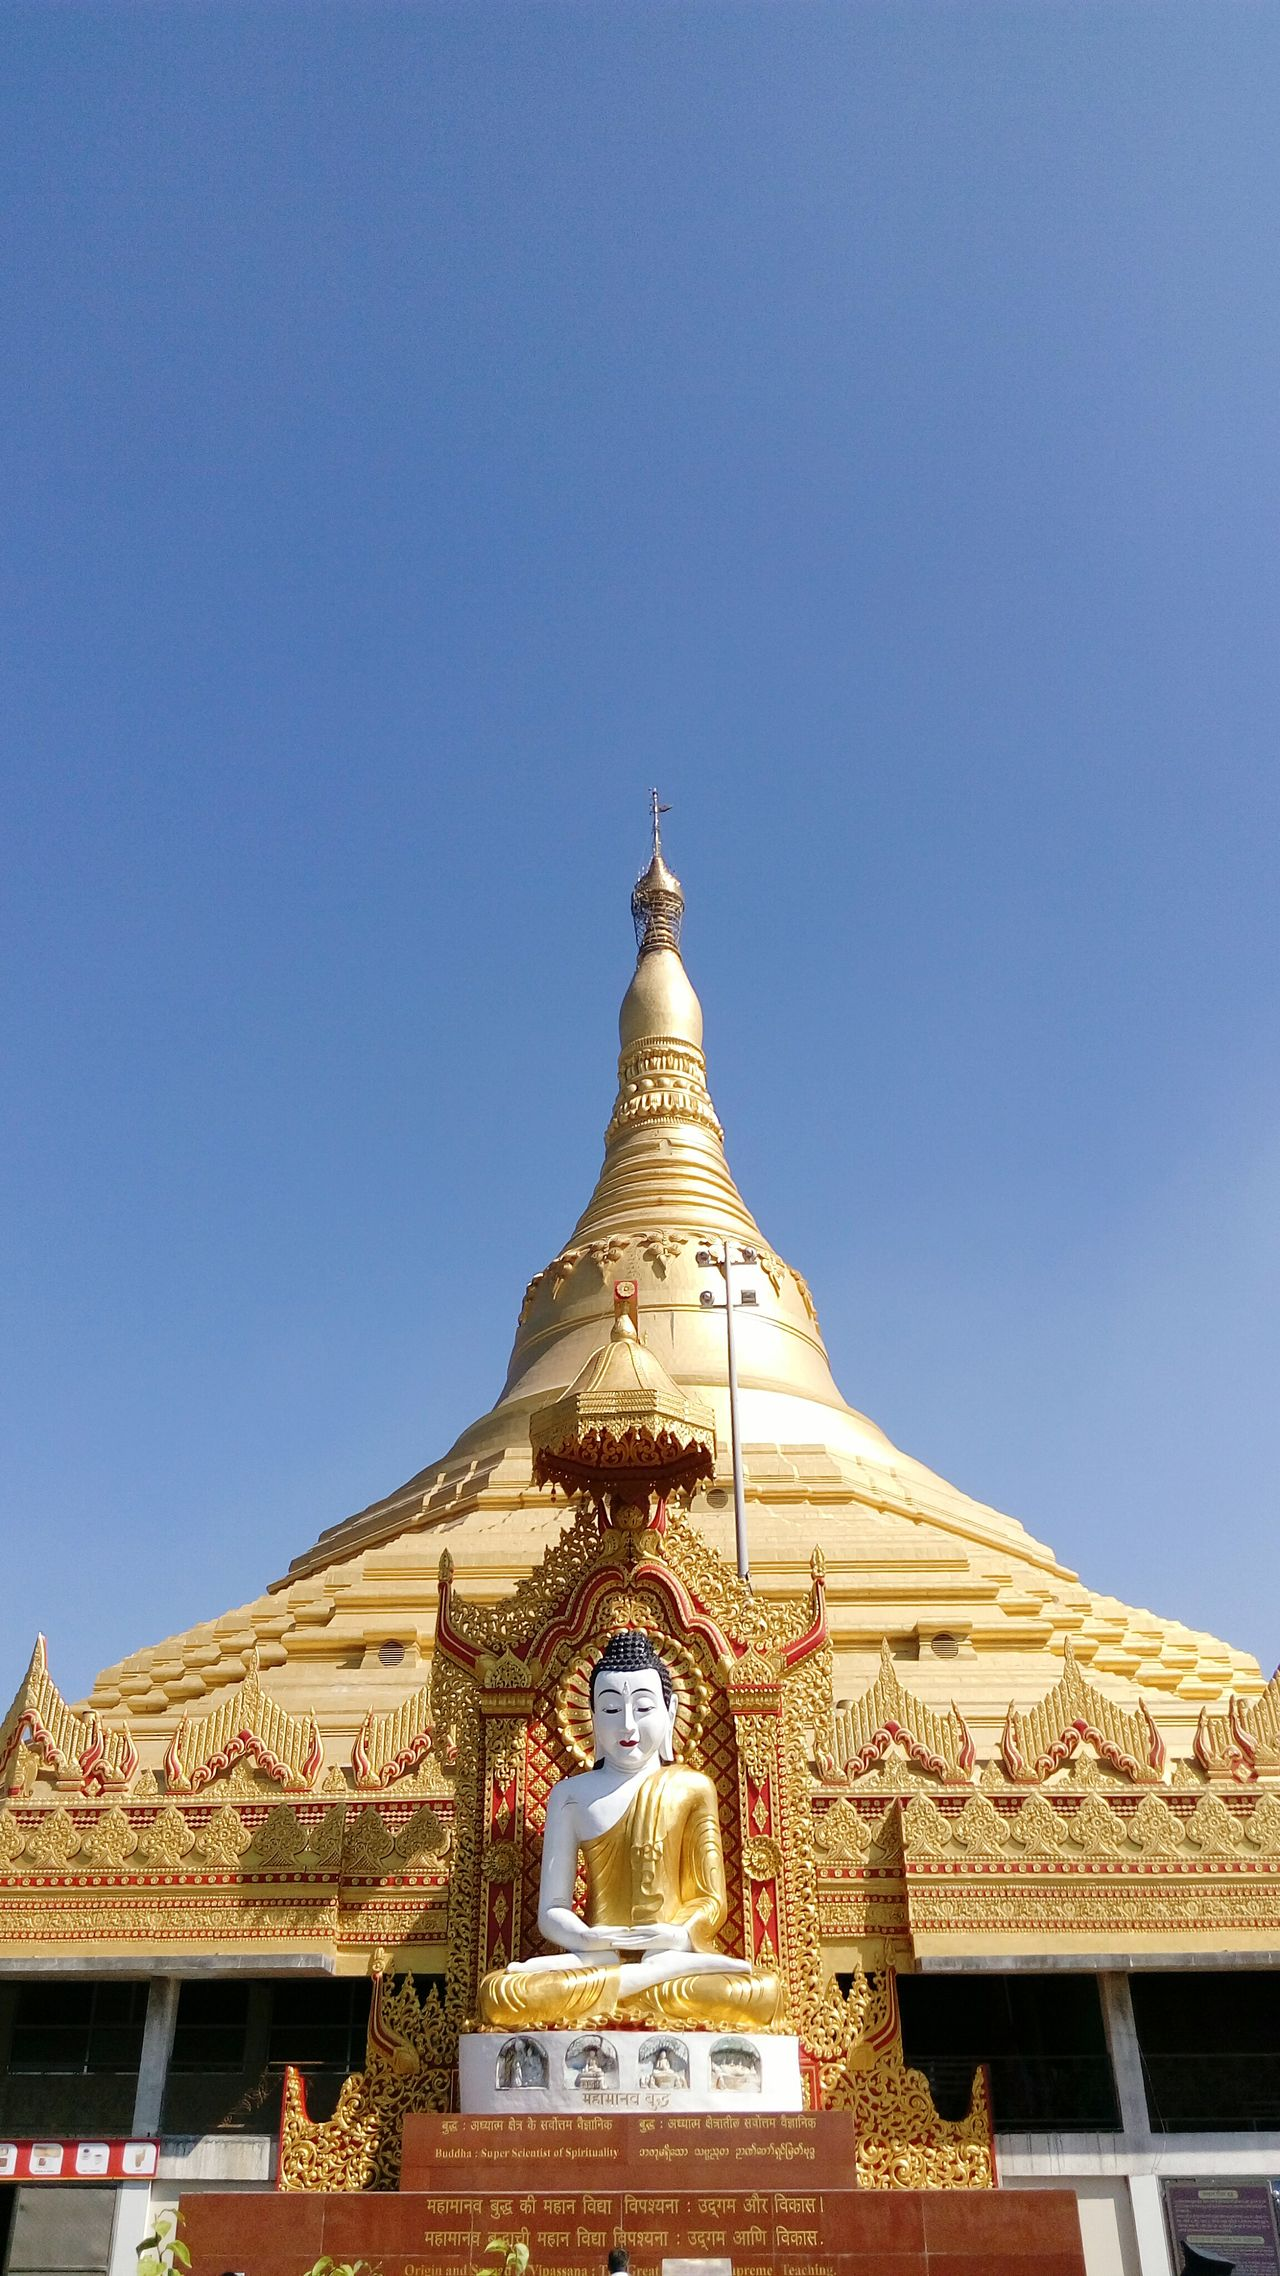 Religion Architecture Place Of Worship Gold Gold Colored Pagoda Travel Blue History Cityscape Sky Business Finance And Industry Cultures No People Building Feature Royalty Outdoors Day Pagoda India Global Vipassana Pagoda Eight Wonders